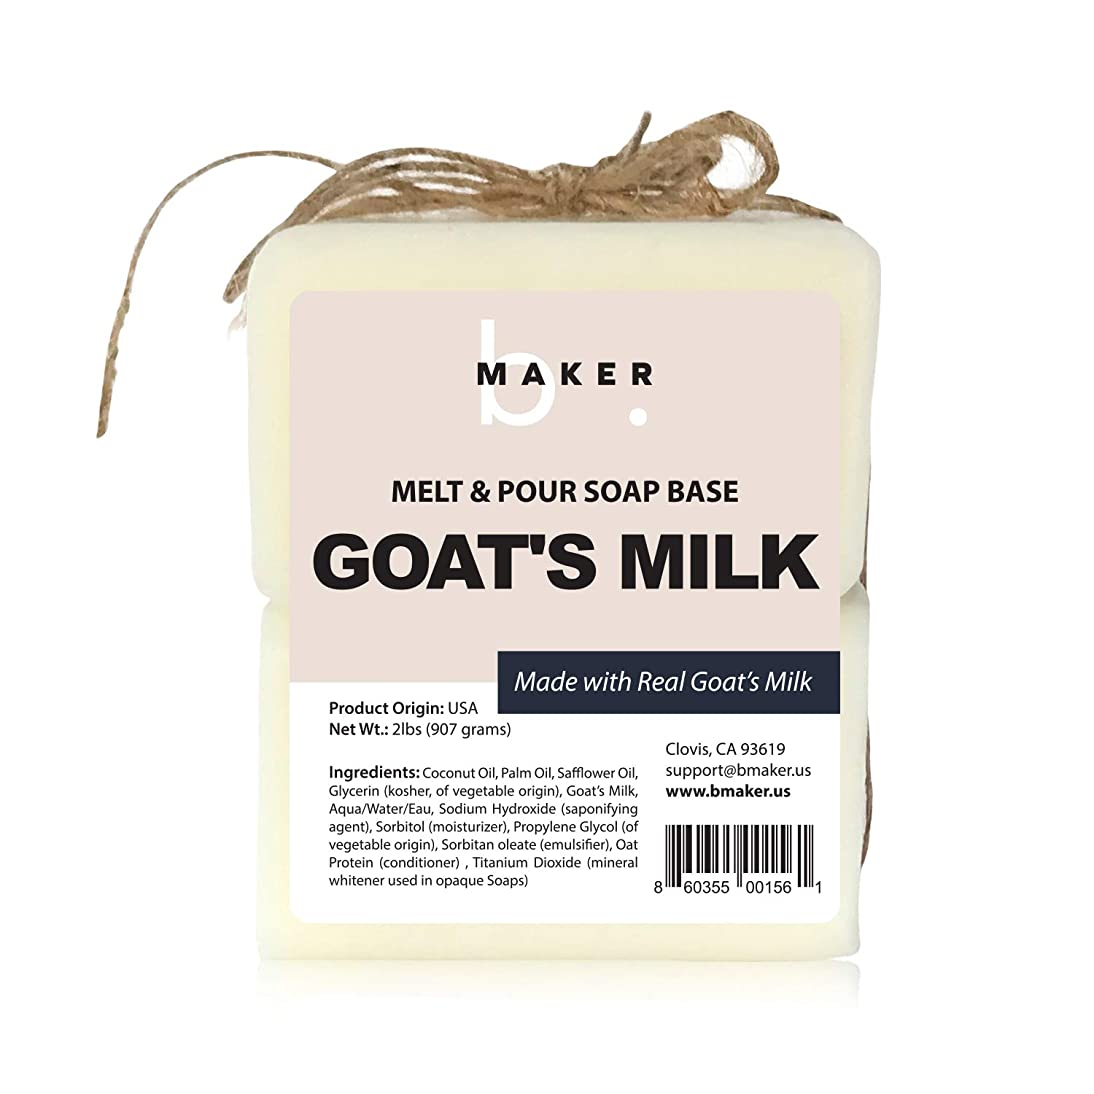 bMAKER All-Natural Goats Milk Melt and Pour Soap Base (2lb Blocks)   Moisturizing and Nourishing M&P Base Soap Making Supplies   Great for Sensitive or Dry Skin